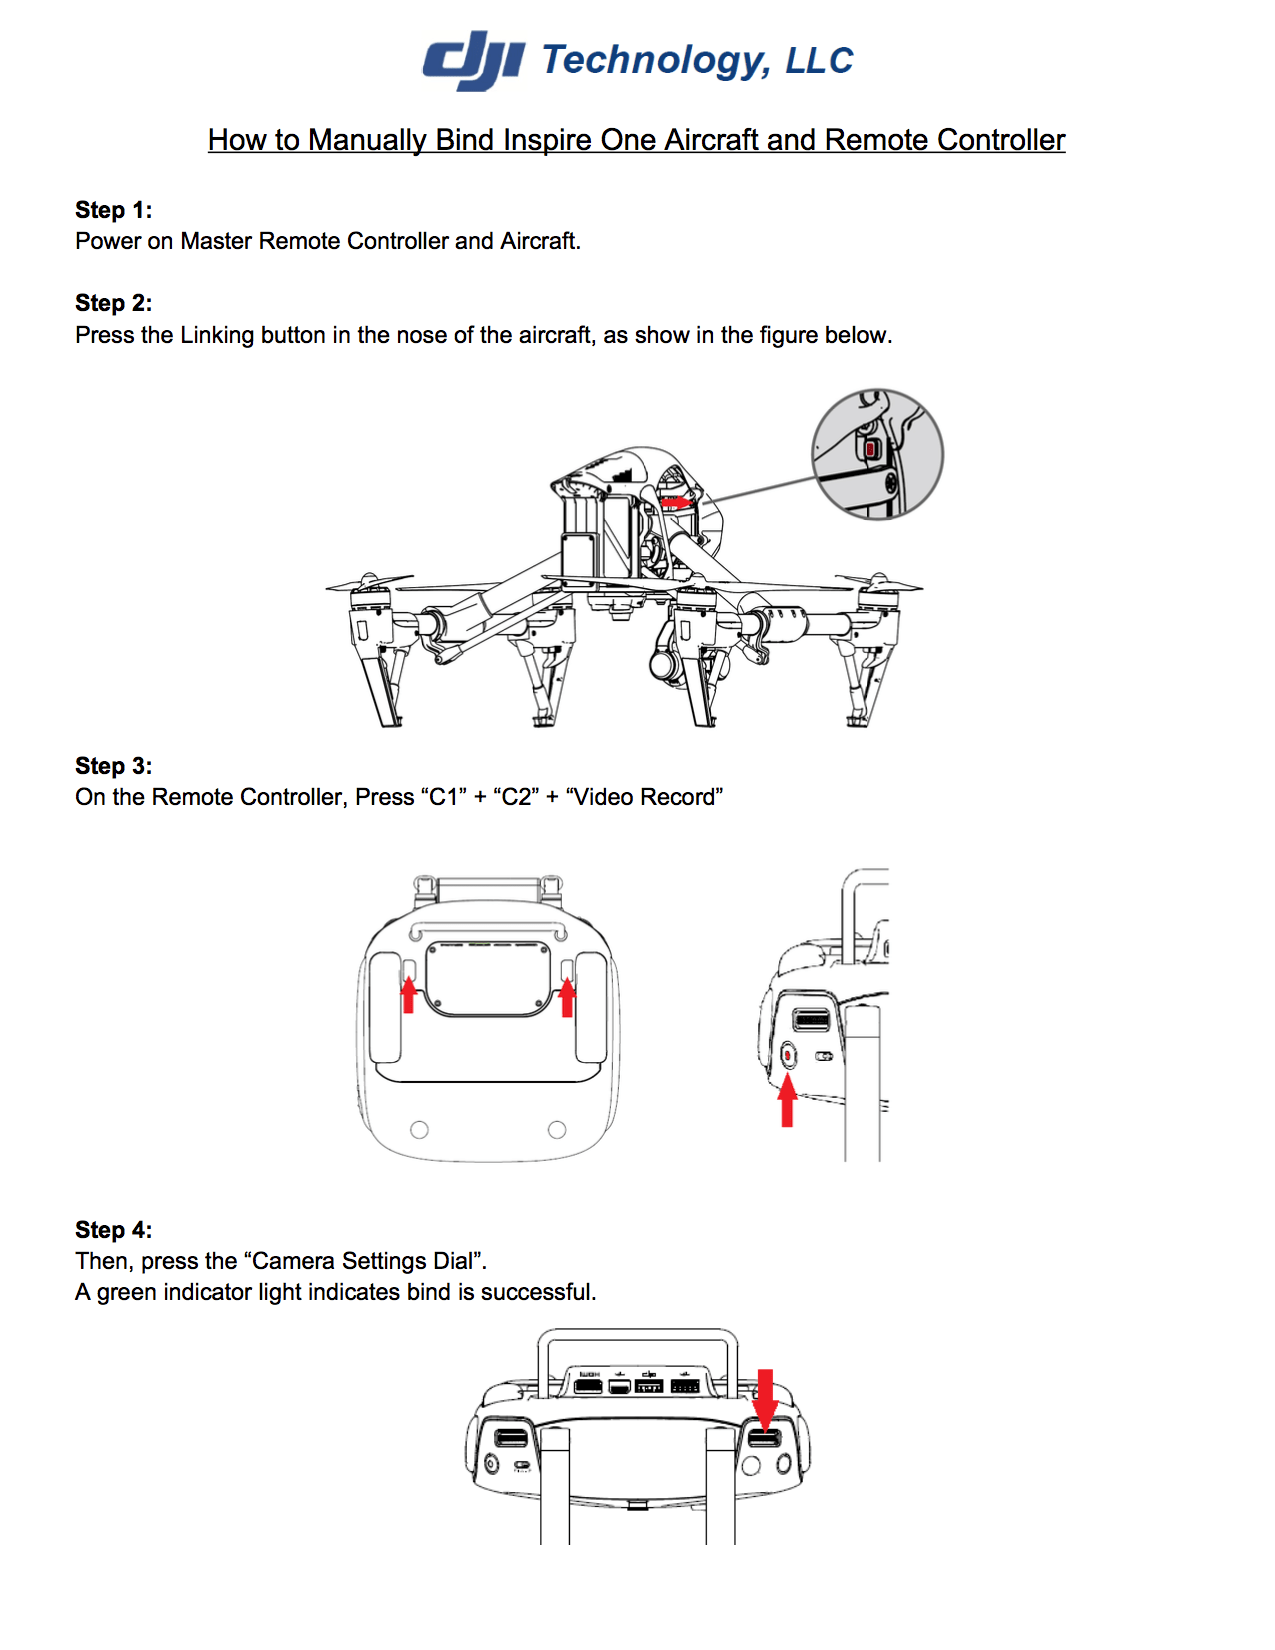 Serious Issue My Inspire1 Is Now A Brick